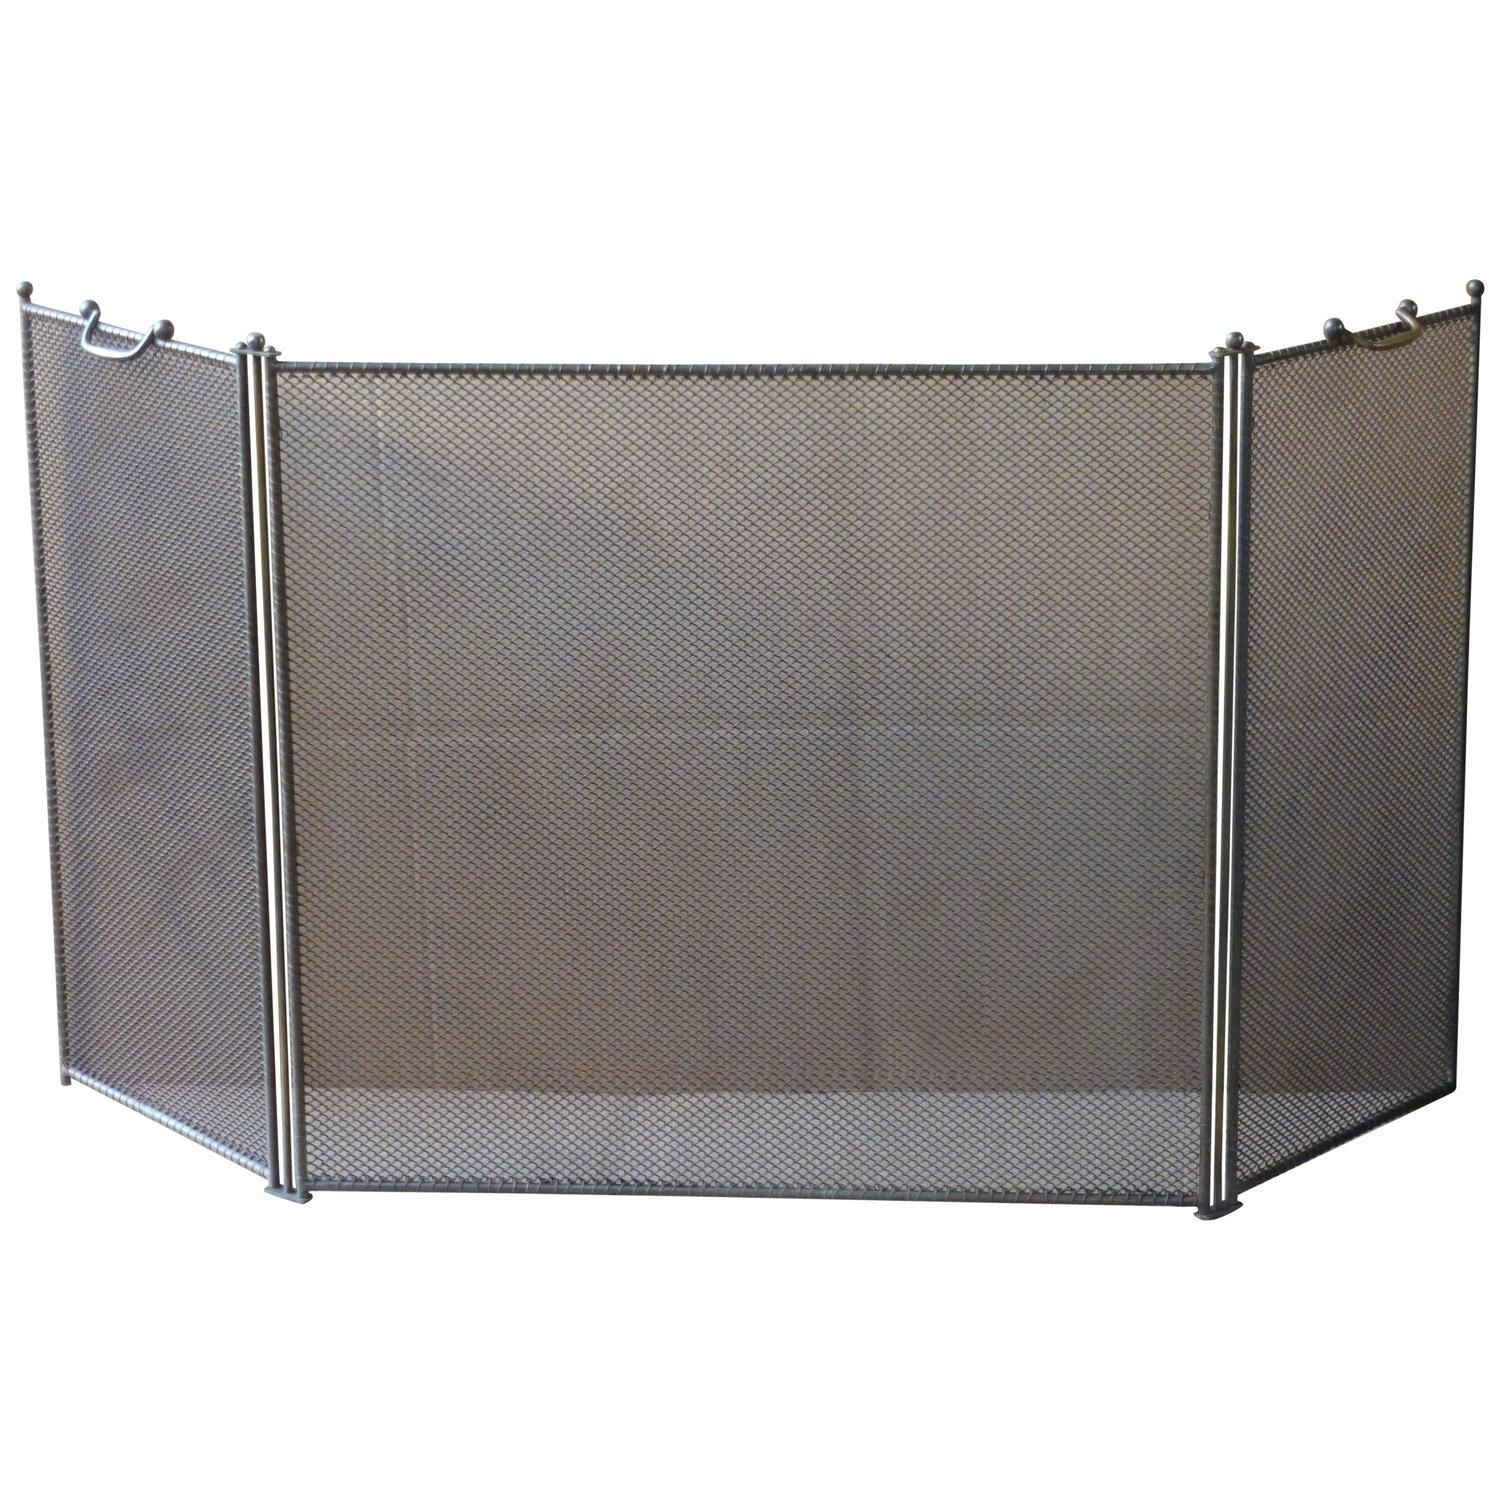 Pilgrim Fireplace Screens Beautiful 2 Door Steel Flat Guard Fireplace Fire Screen Black Plow